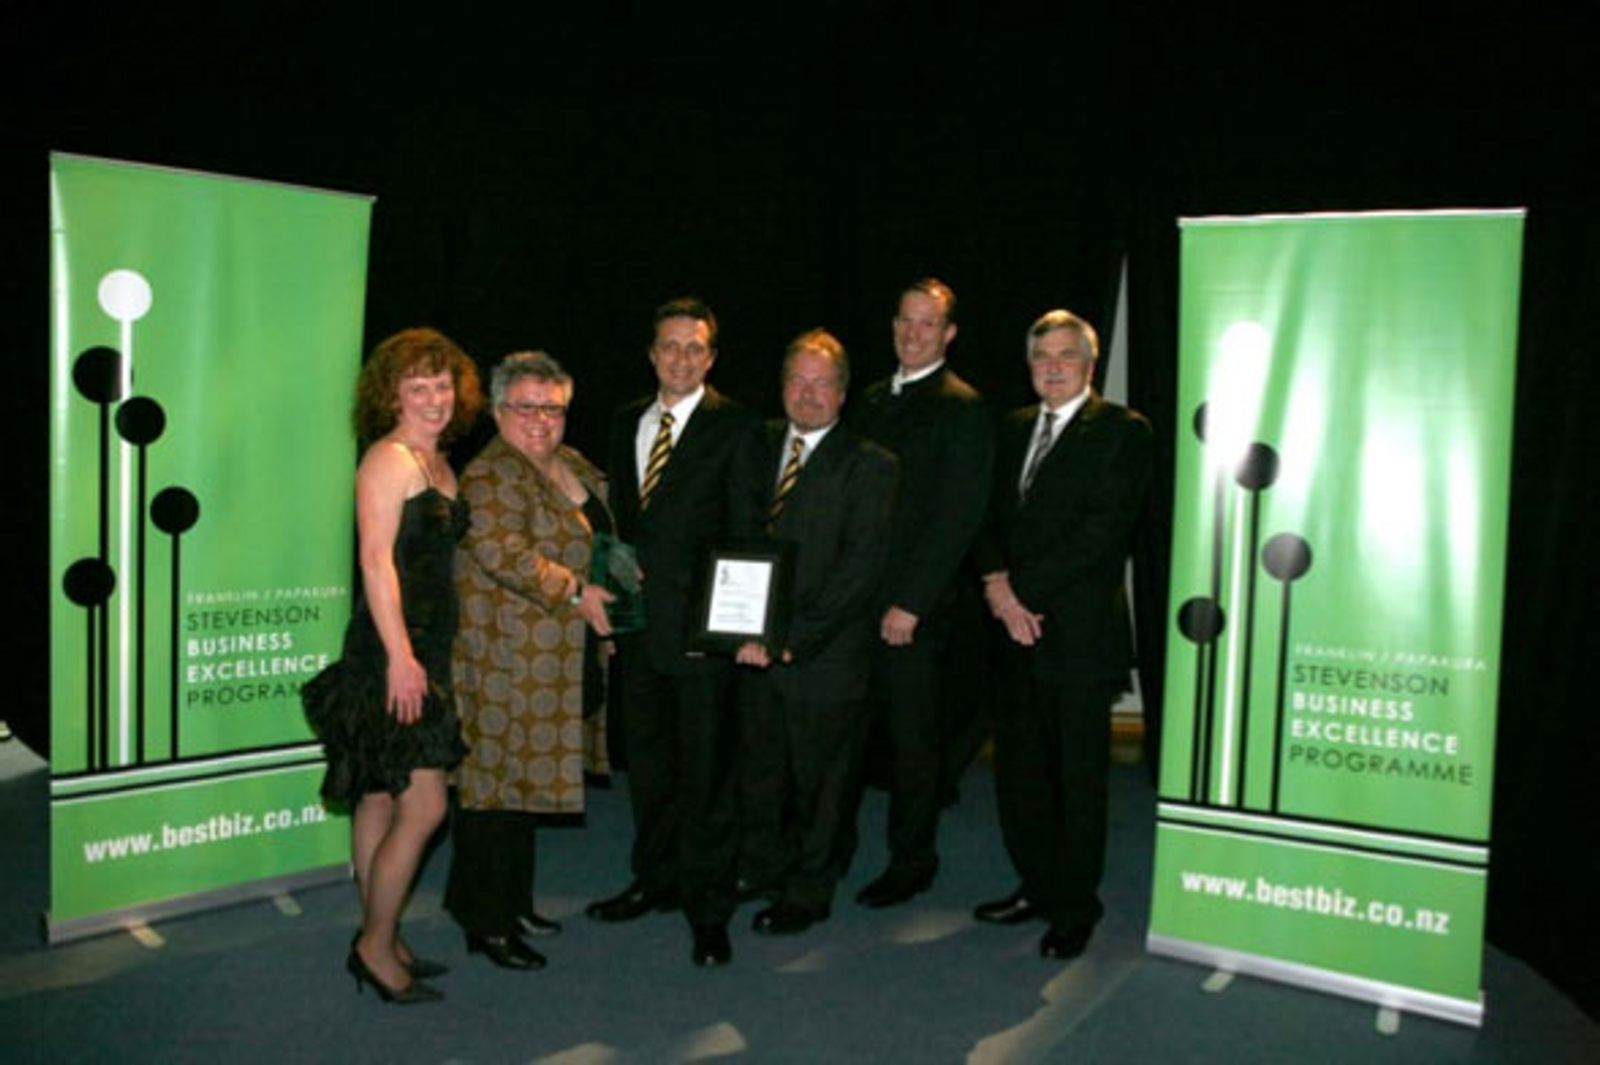 OHUG team, left to right: Michelle Rigby, Nan Russell, Steve Rigby, Tony Burtton, Tony Diment and Category Sponsor, Franklin Food's, Paul Brown show off the Best Emerging Business Award.